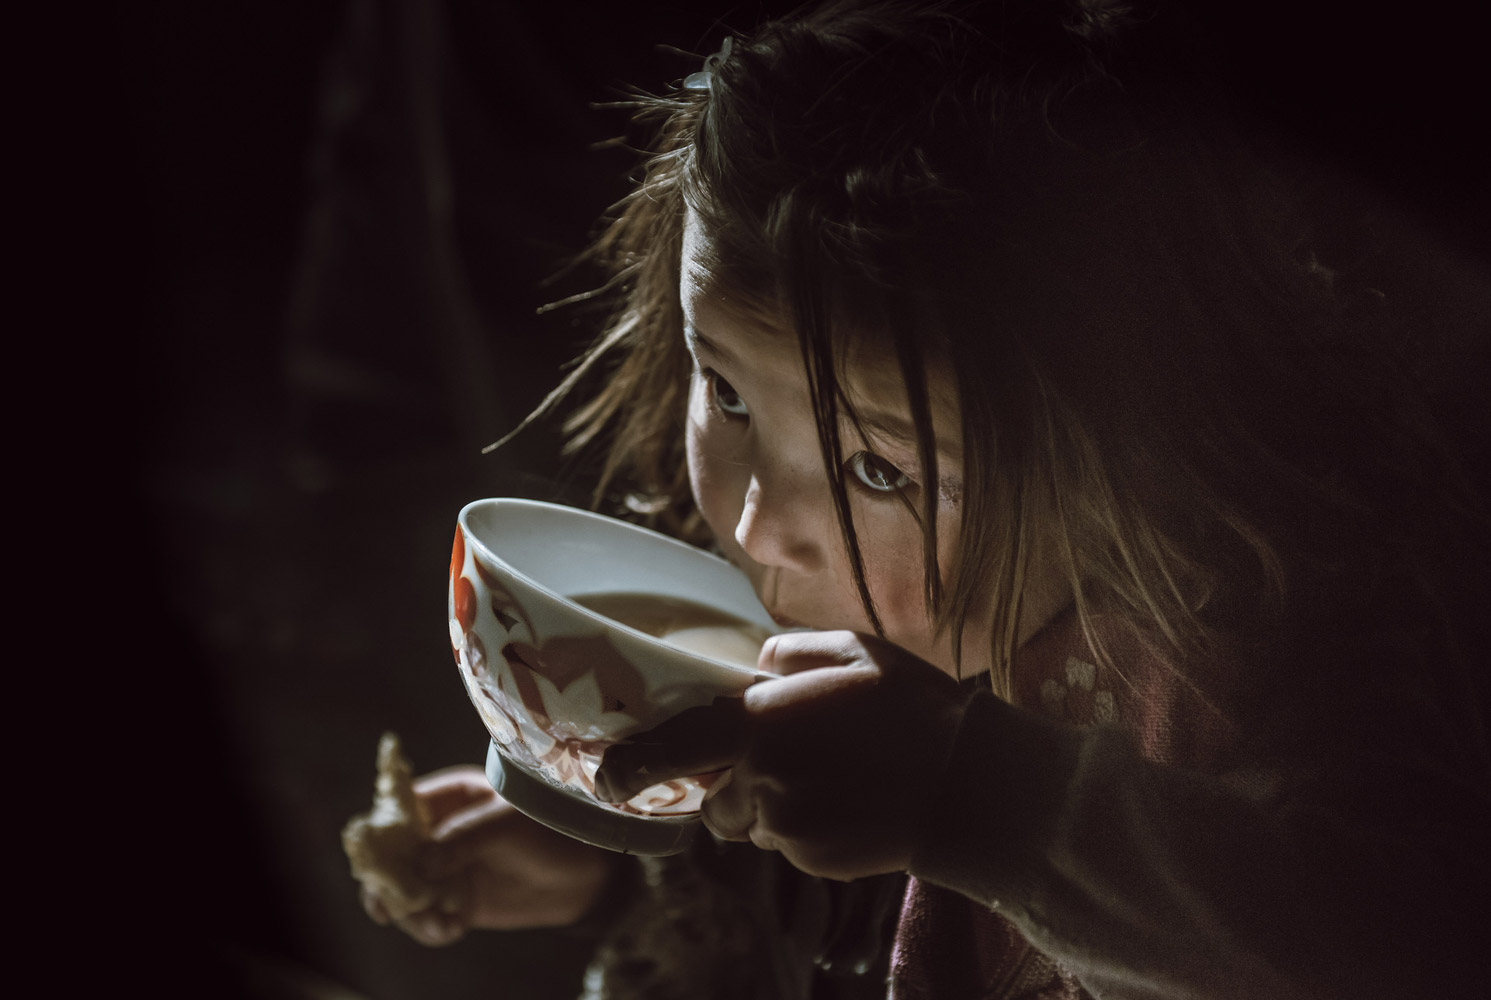 Kazakh Girl Drinking Her Morning Tea, © Atul Prasad, San Diego, CA, United States, First Place Amateur : Babies/Children, PDN Faces - Portrait Photography Contest